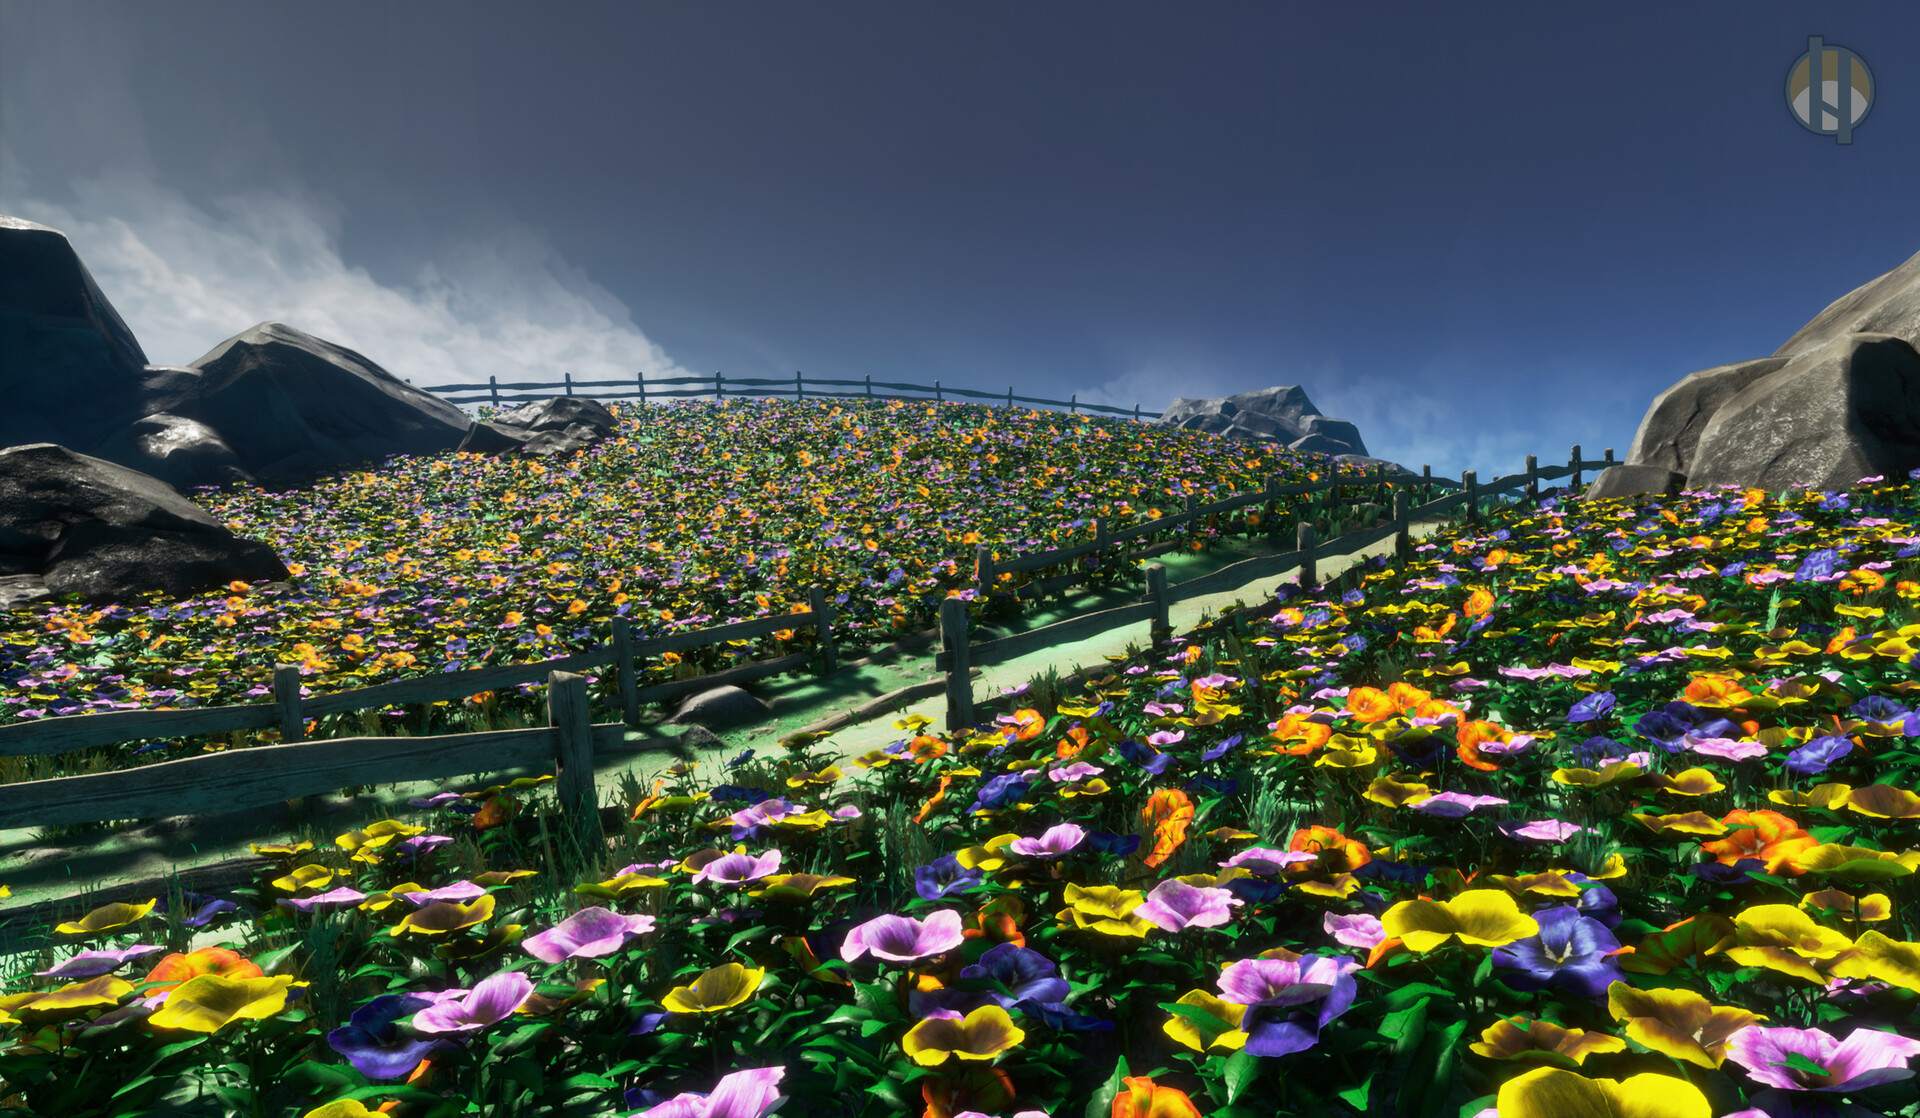 Justin hrala pansy field 01 wide